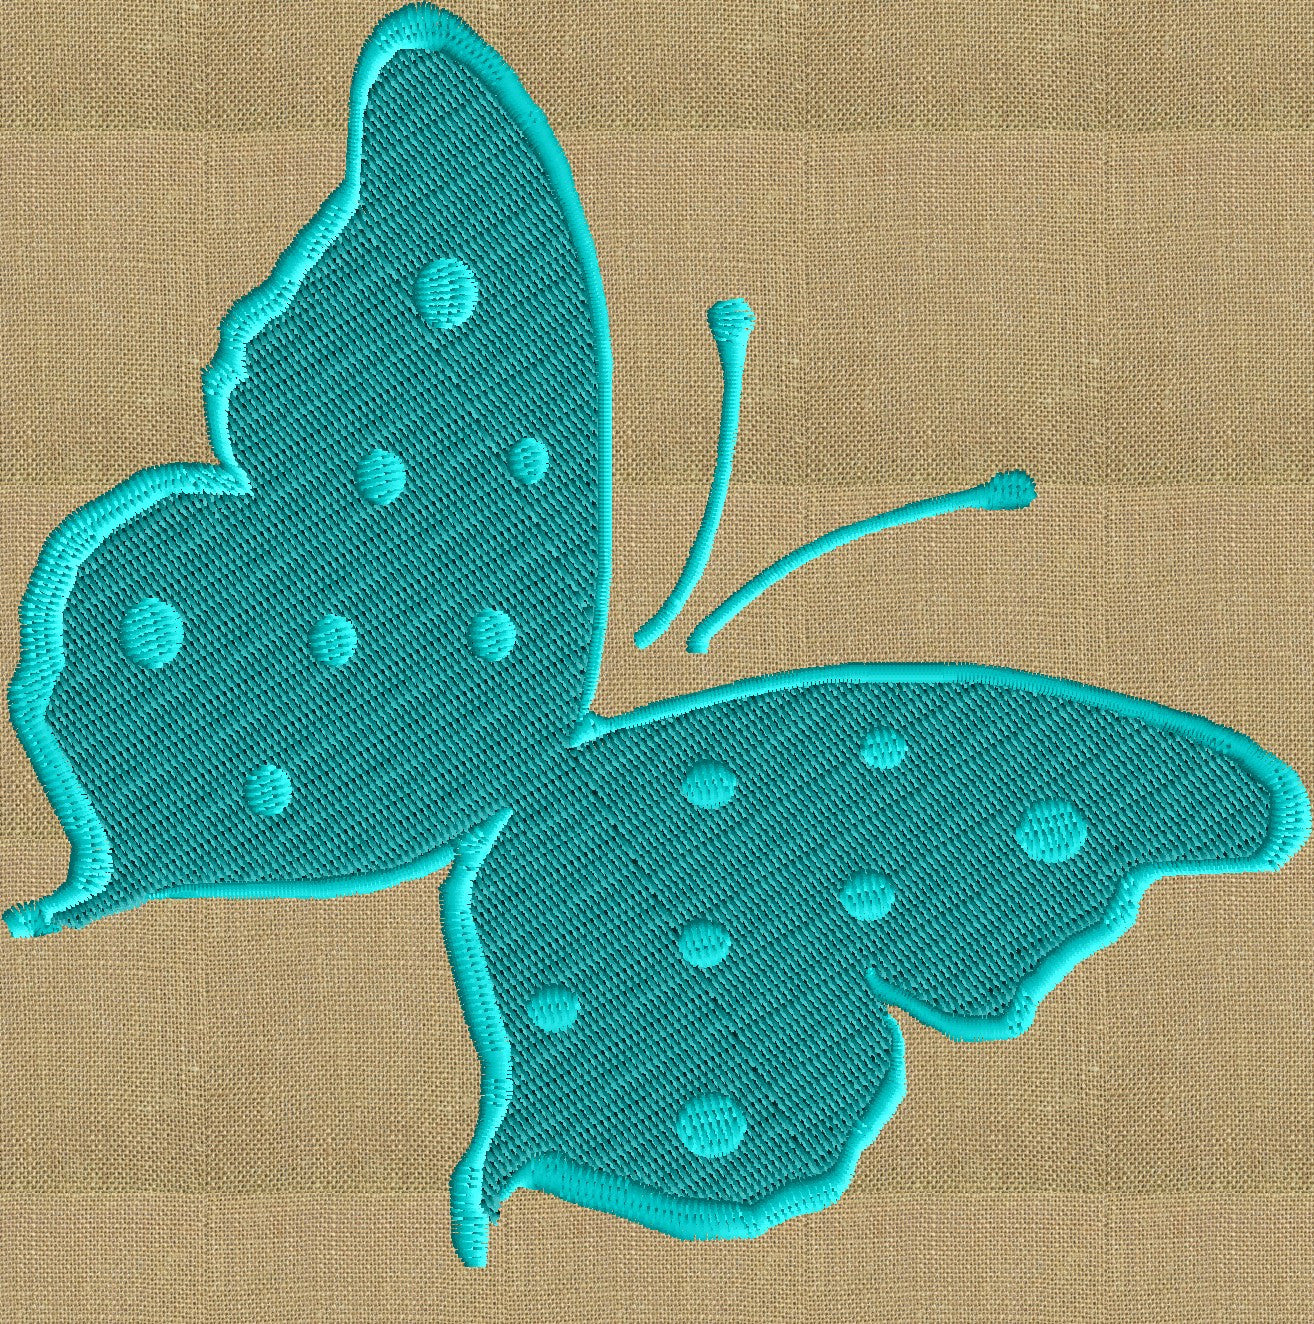 Butterfly - EMBROIDERY DESIGN file - Instant download Exp Jef Vp3 Pes Dst Hus formats - 2 sizes & 2 colors